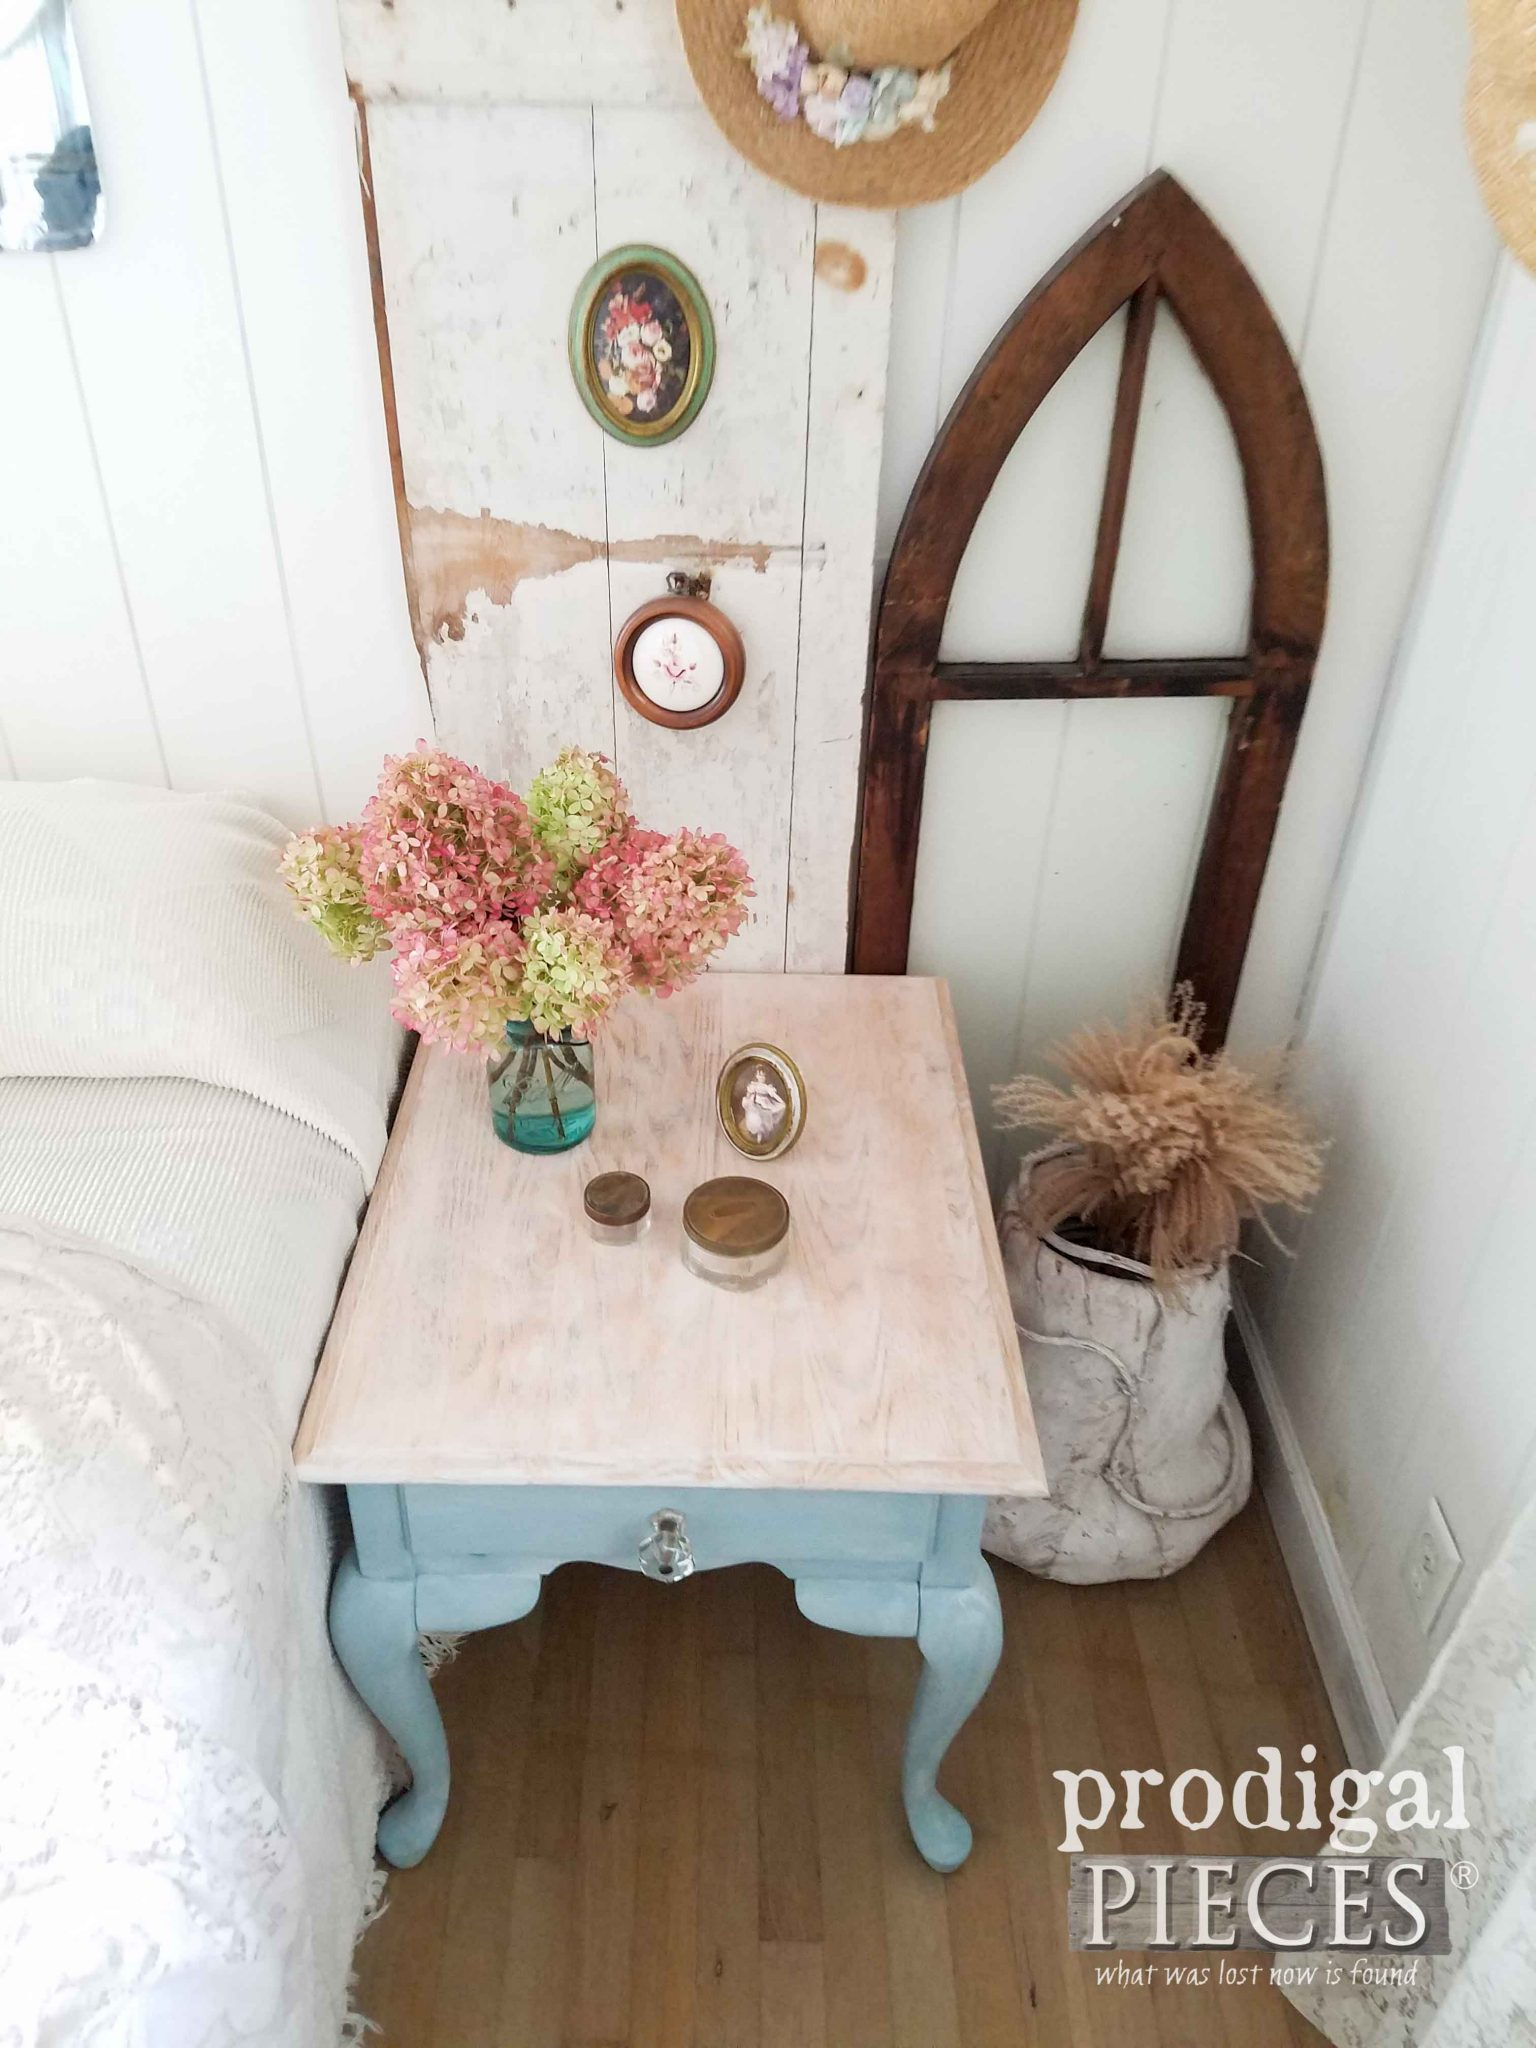 Whitewashed Oak Queen Anne Table with Fresh New Look by Prodigal Pieces | prodigalpieces.com